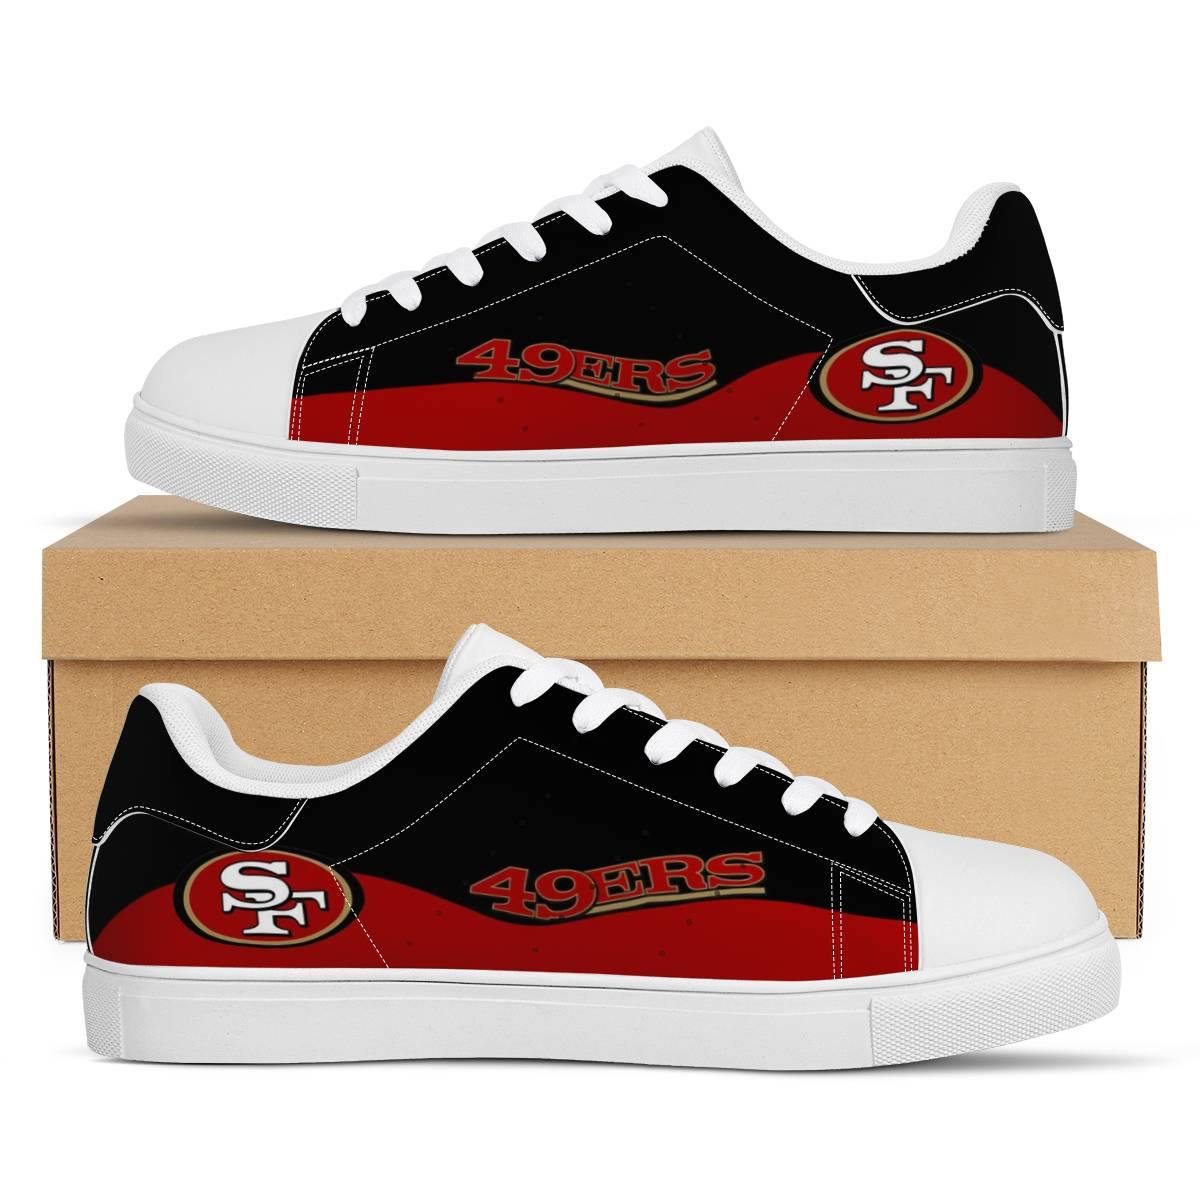 Men's San Francisco 49ers Low Top Leather Sneakers 003